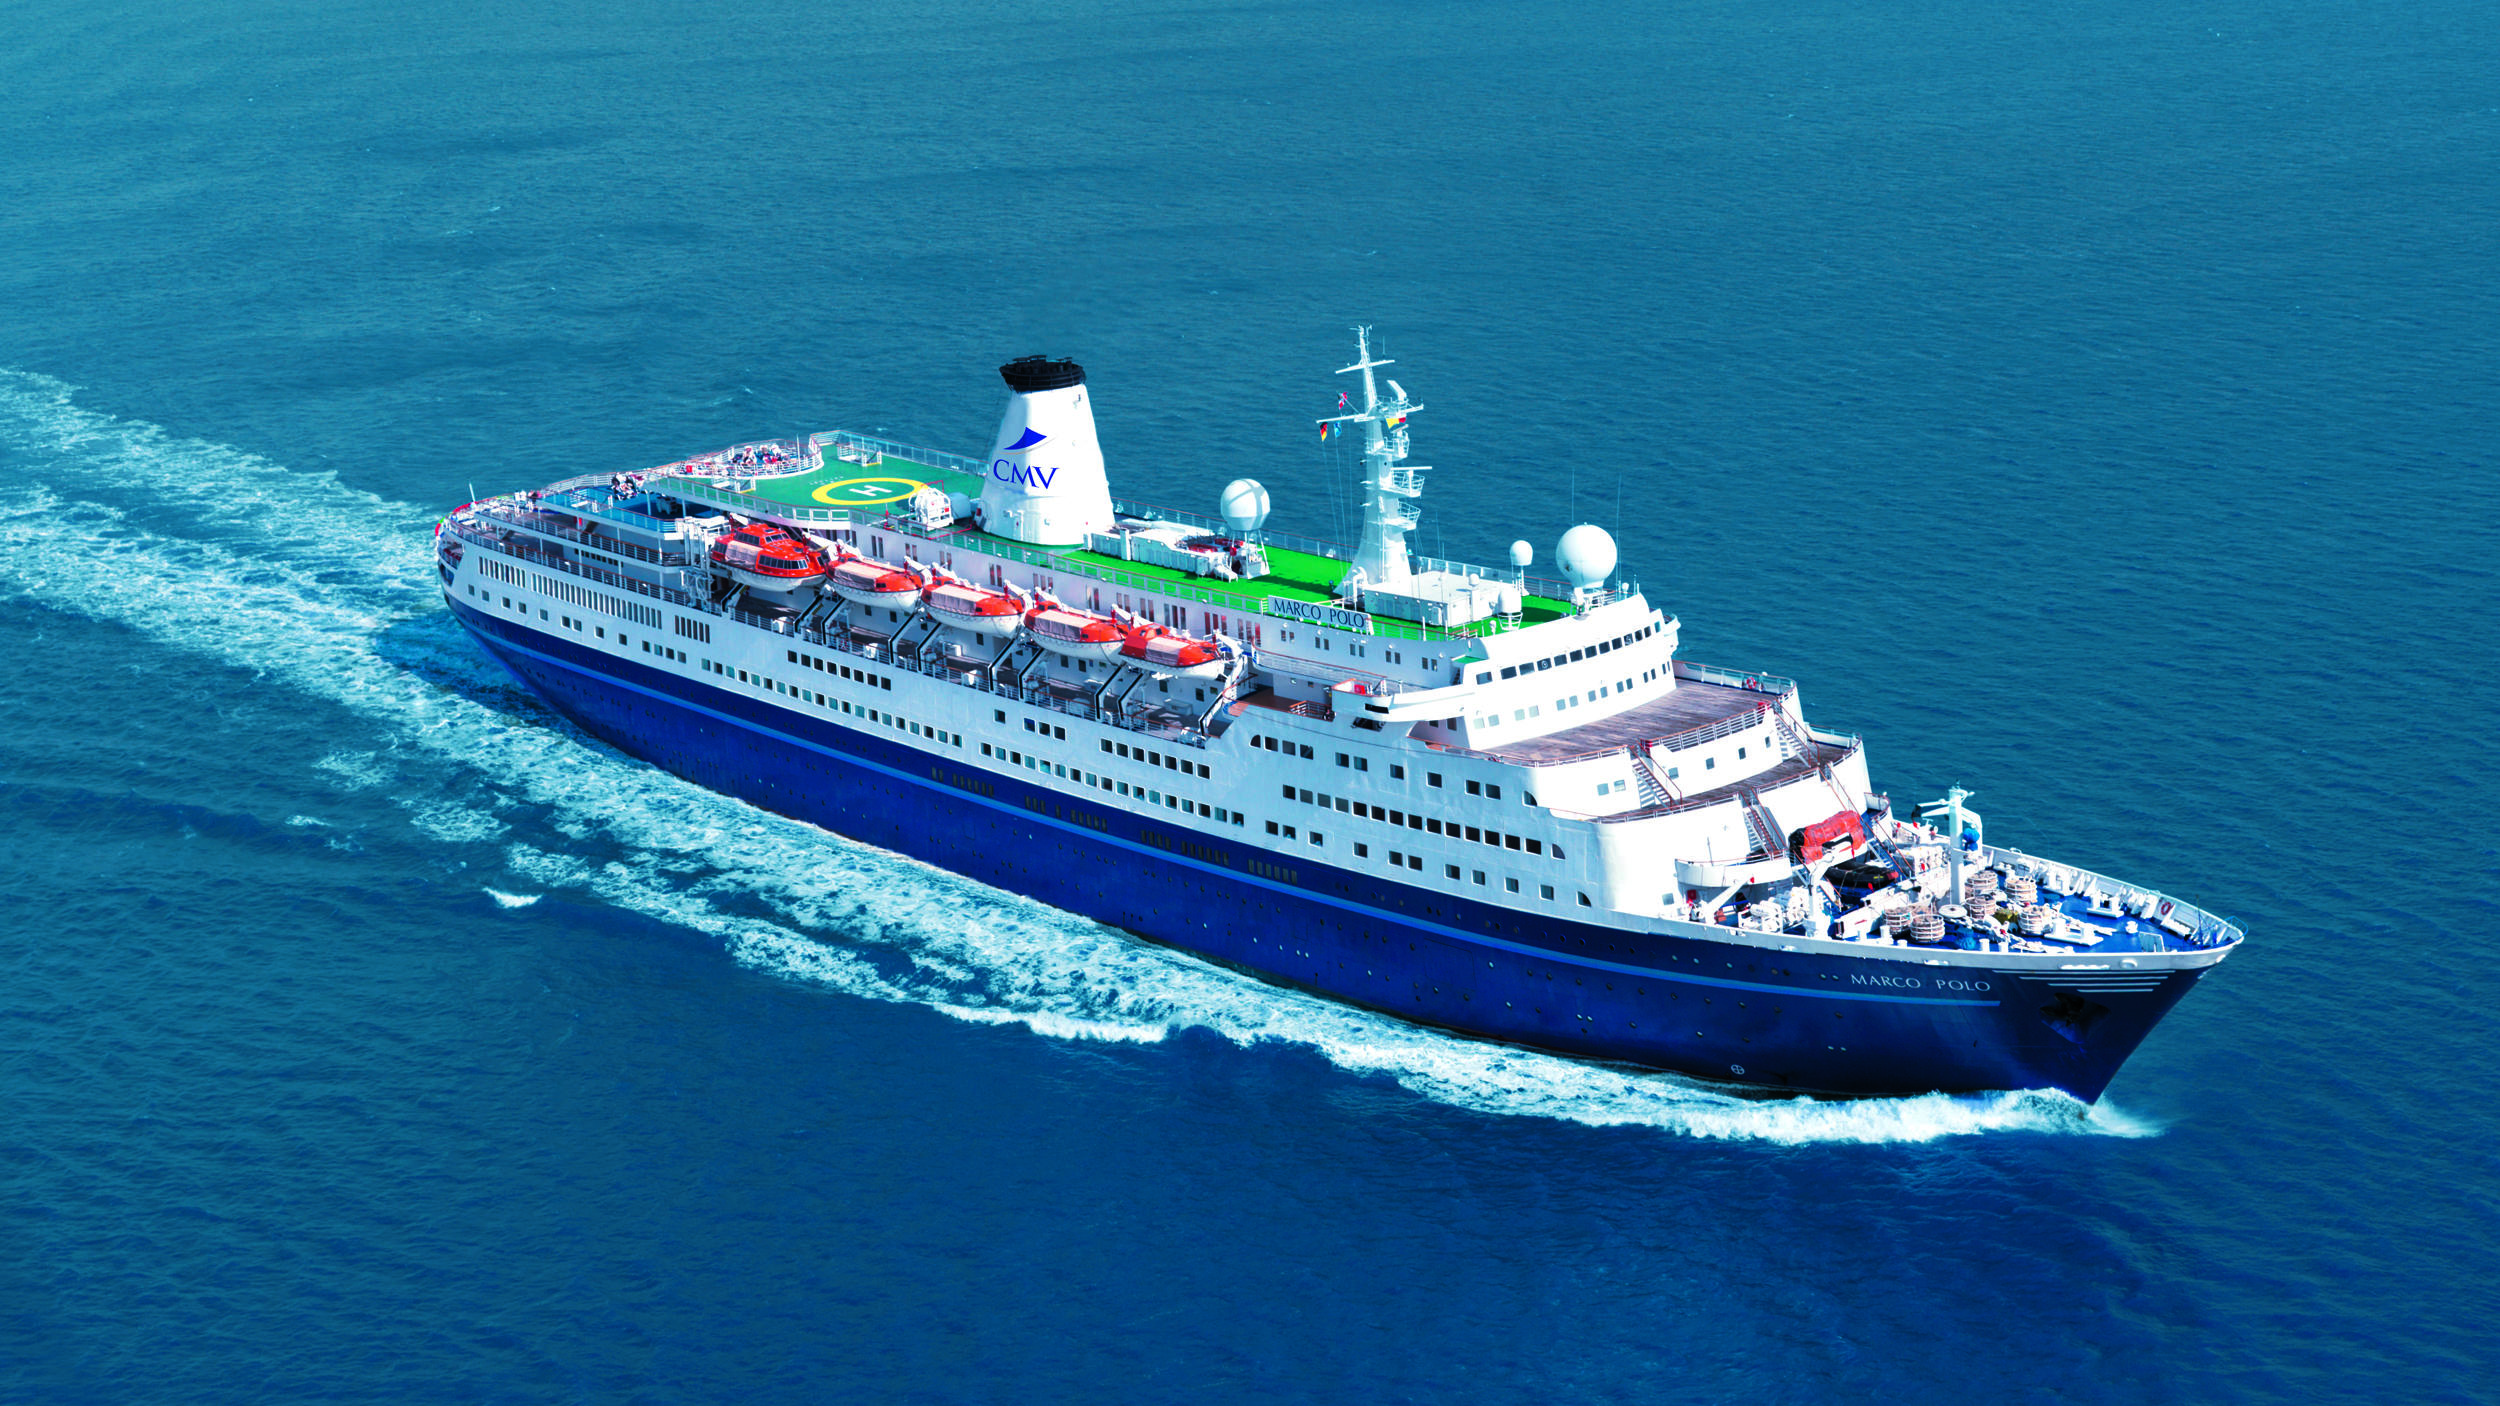 Cruise Maritime Voyages Marco Polo Cruise Ship Reviews - Marco polo cruise ship dress code